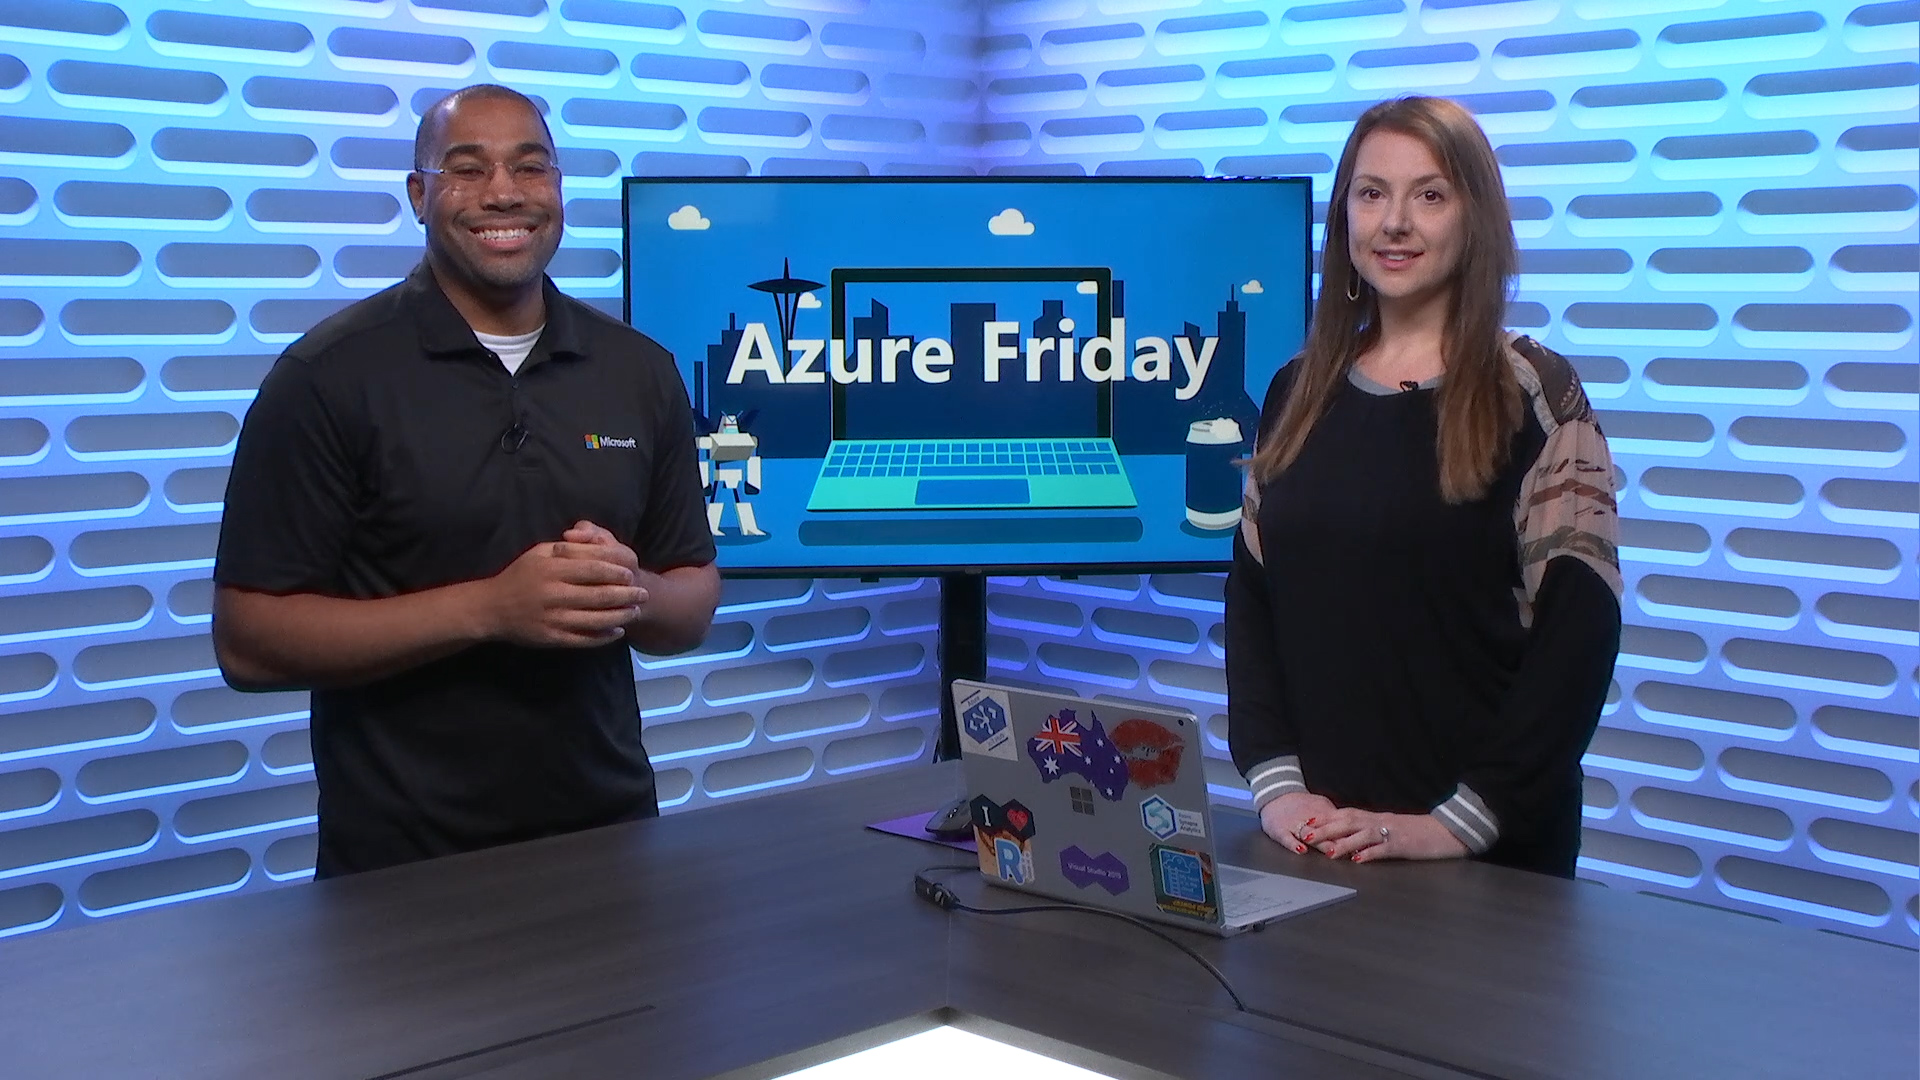 How to share data in place from Azure Data Explorer